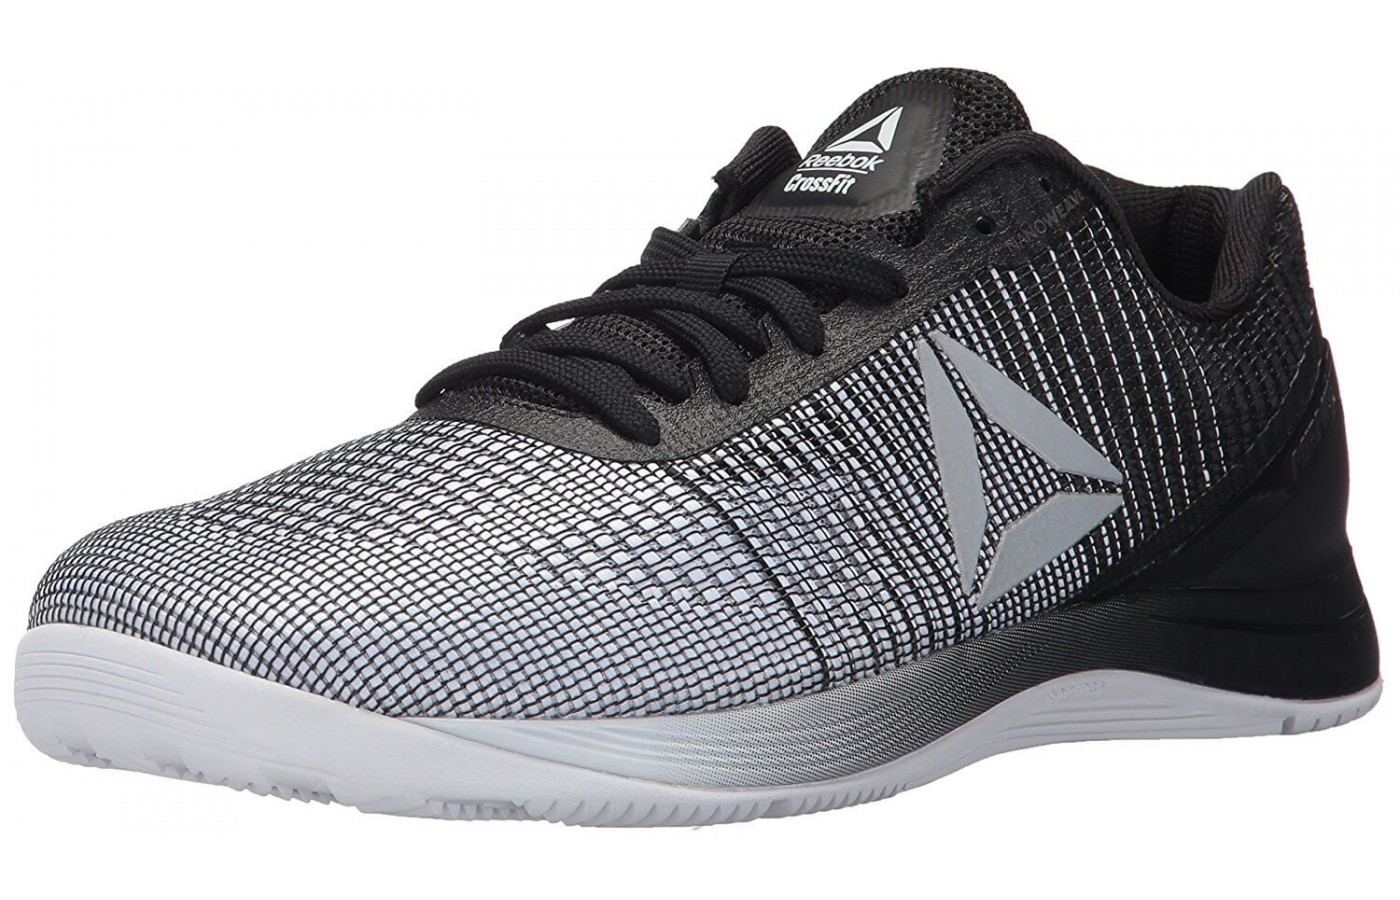 db9088c5b77 The Reebok Crossfit Nano 7 Weave was designed to fix mistakes in the  original design.